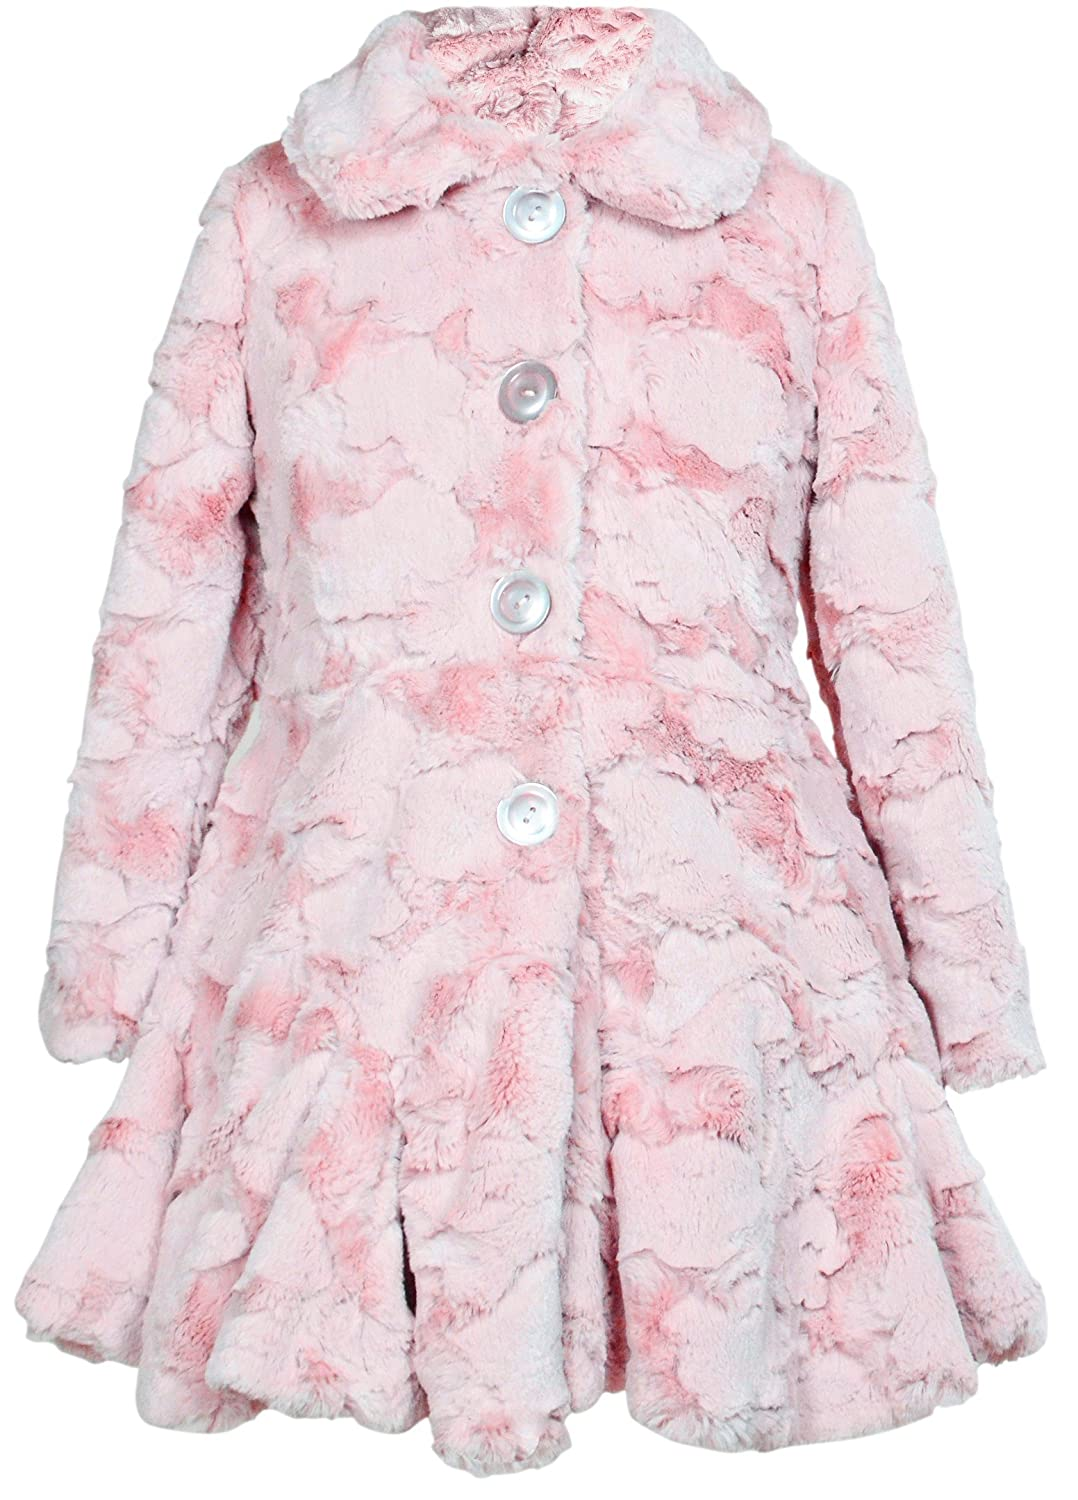 Widgeon Big Girls' Button Front Faux Fur Coat Widgeon Girls 7-16 3504